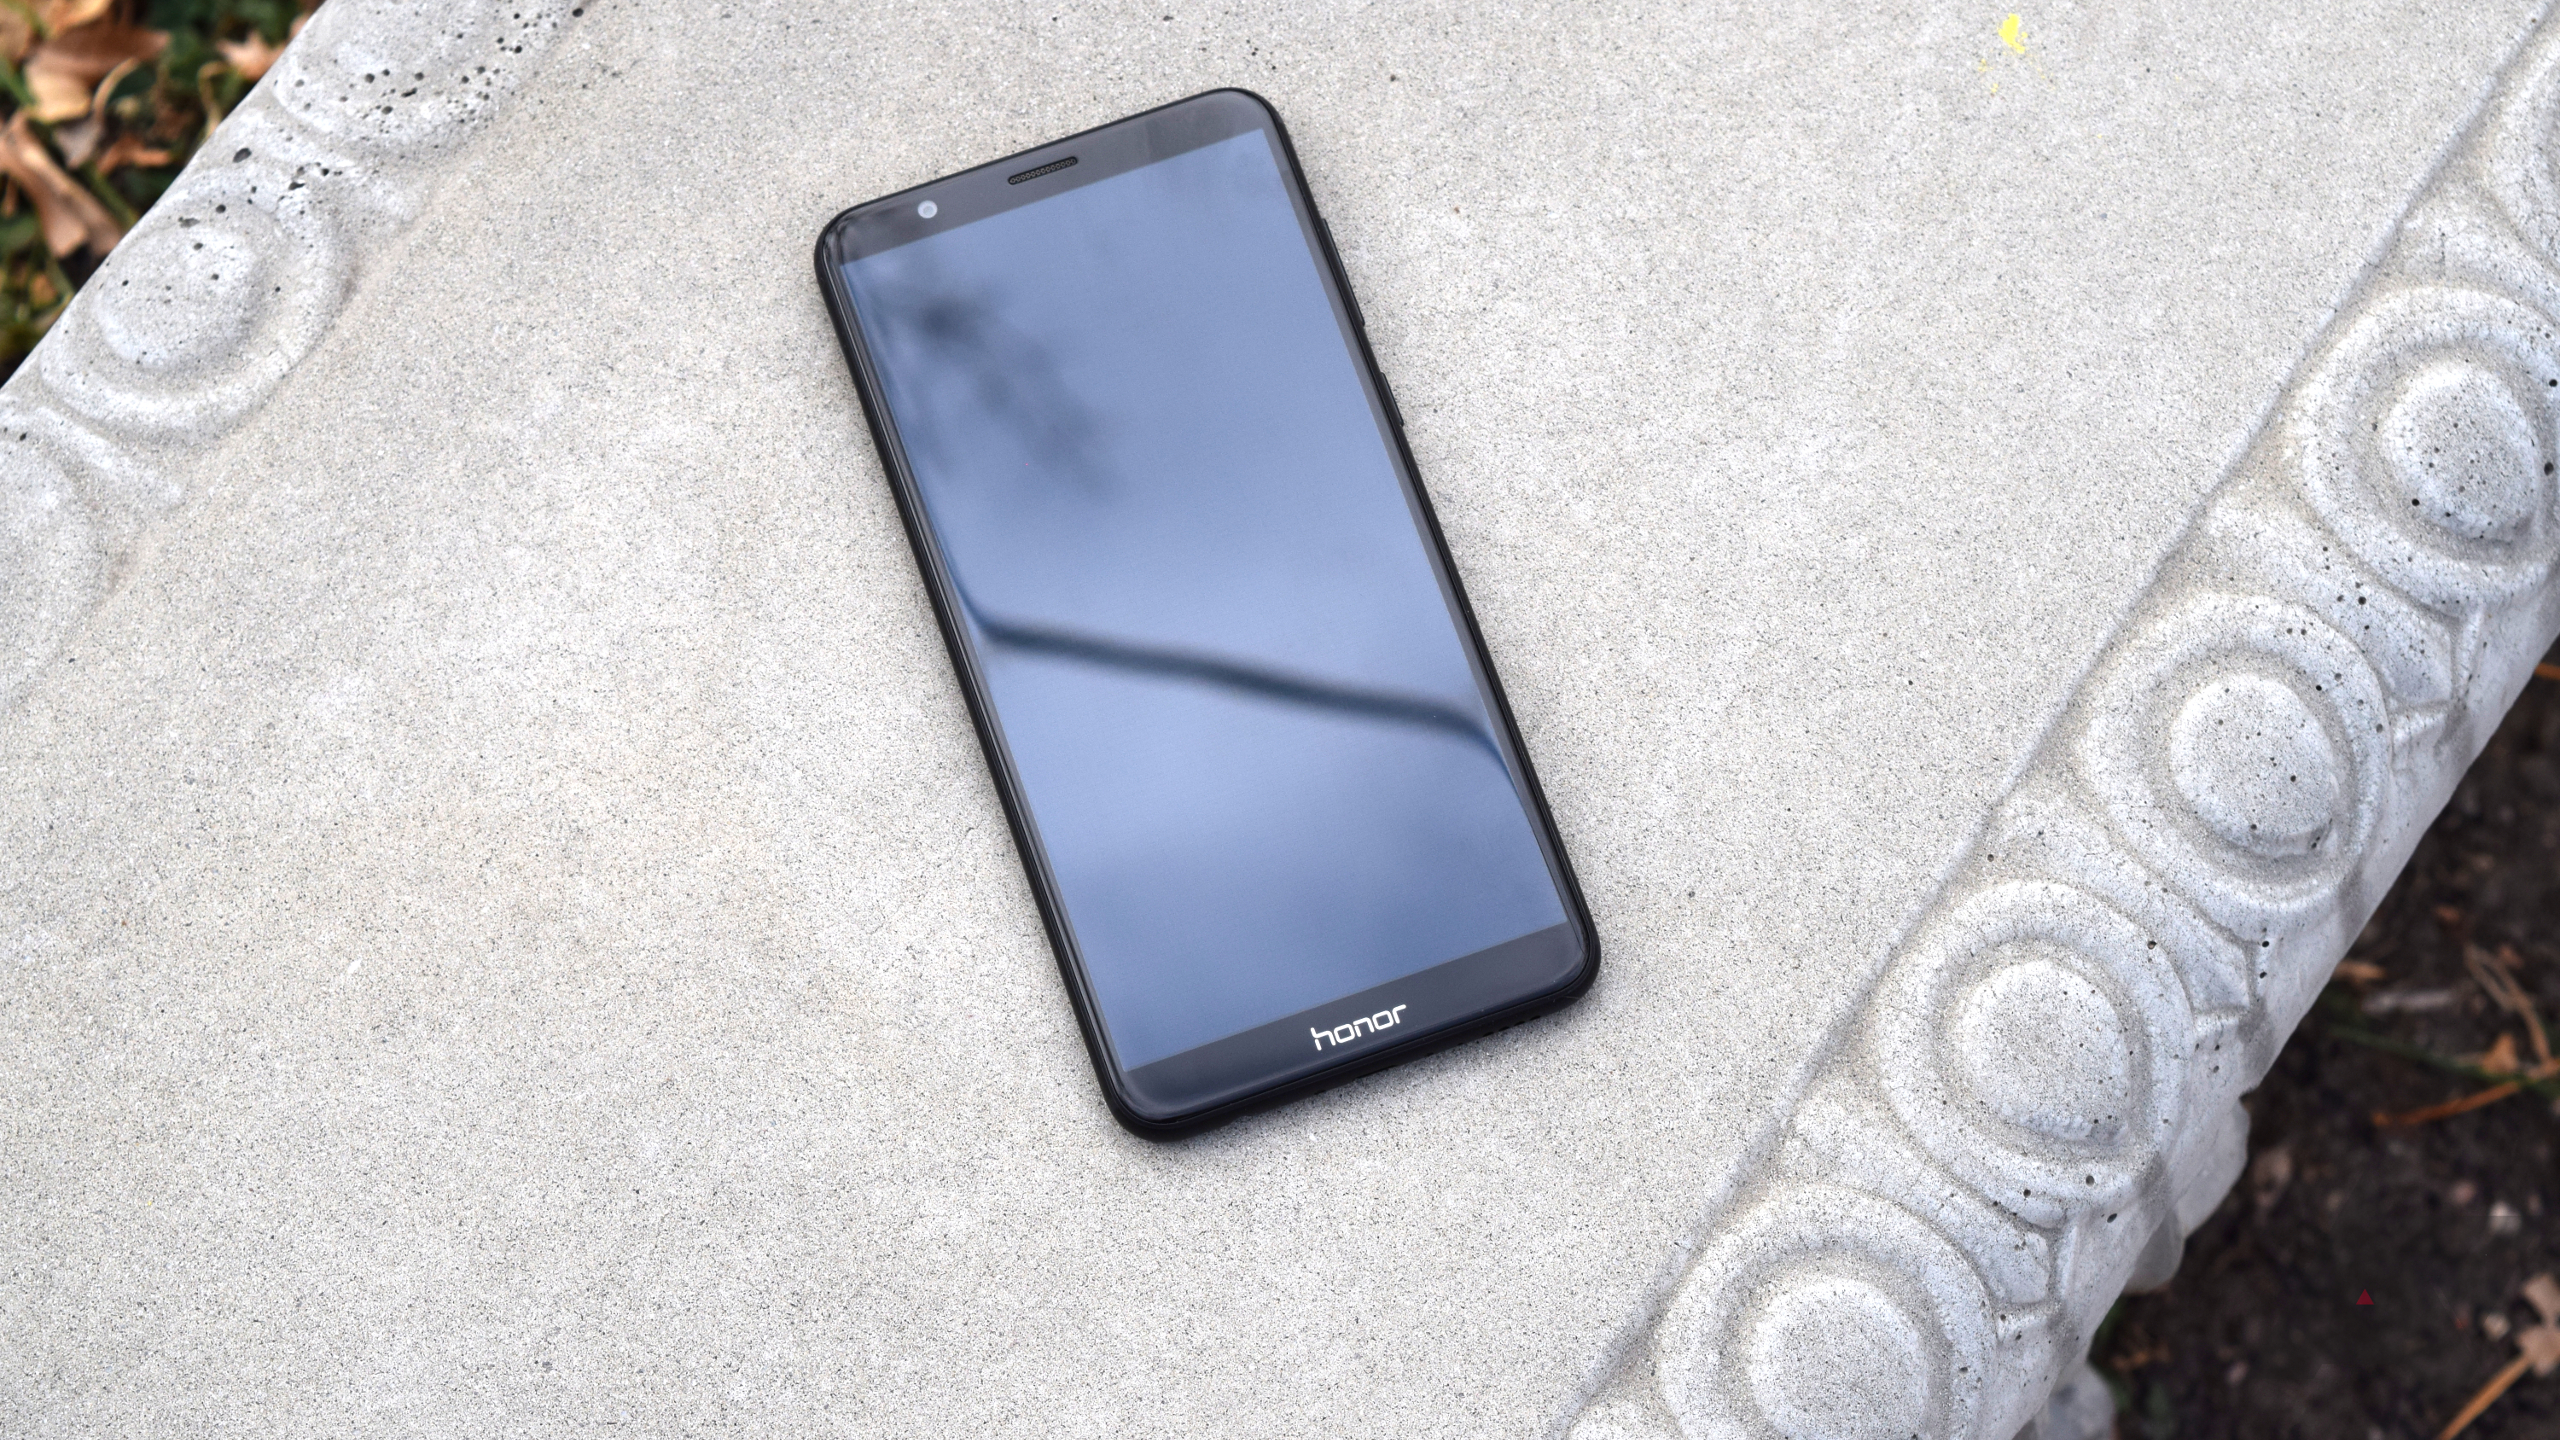 Honor 7X review: A contender for budget king